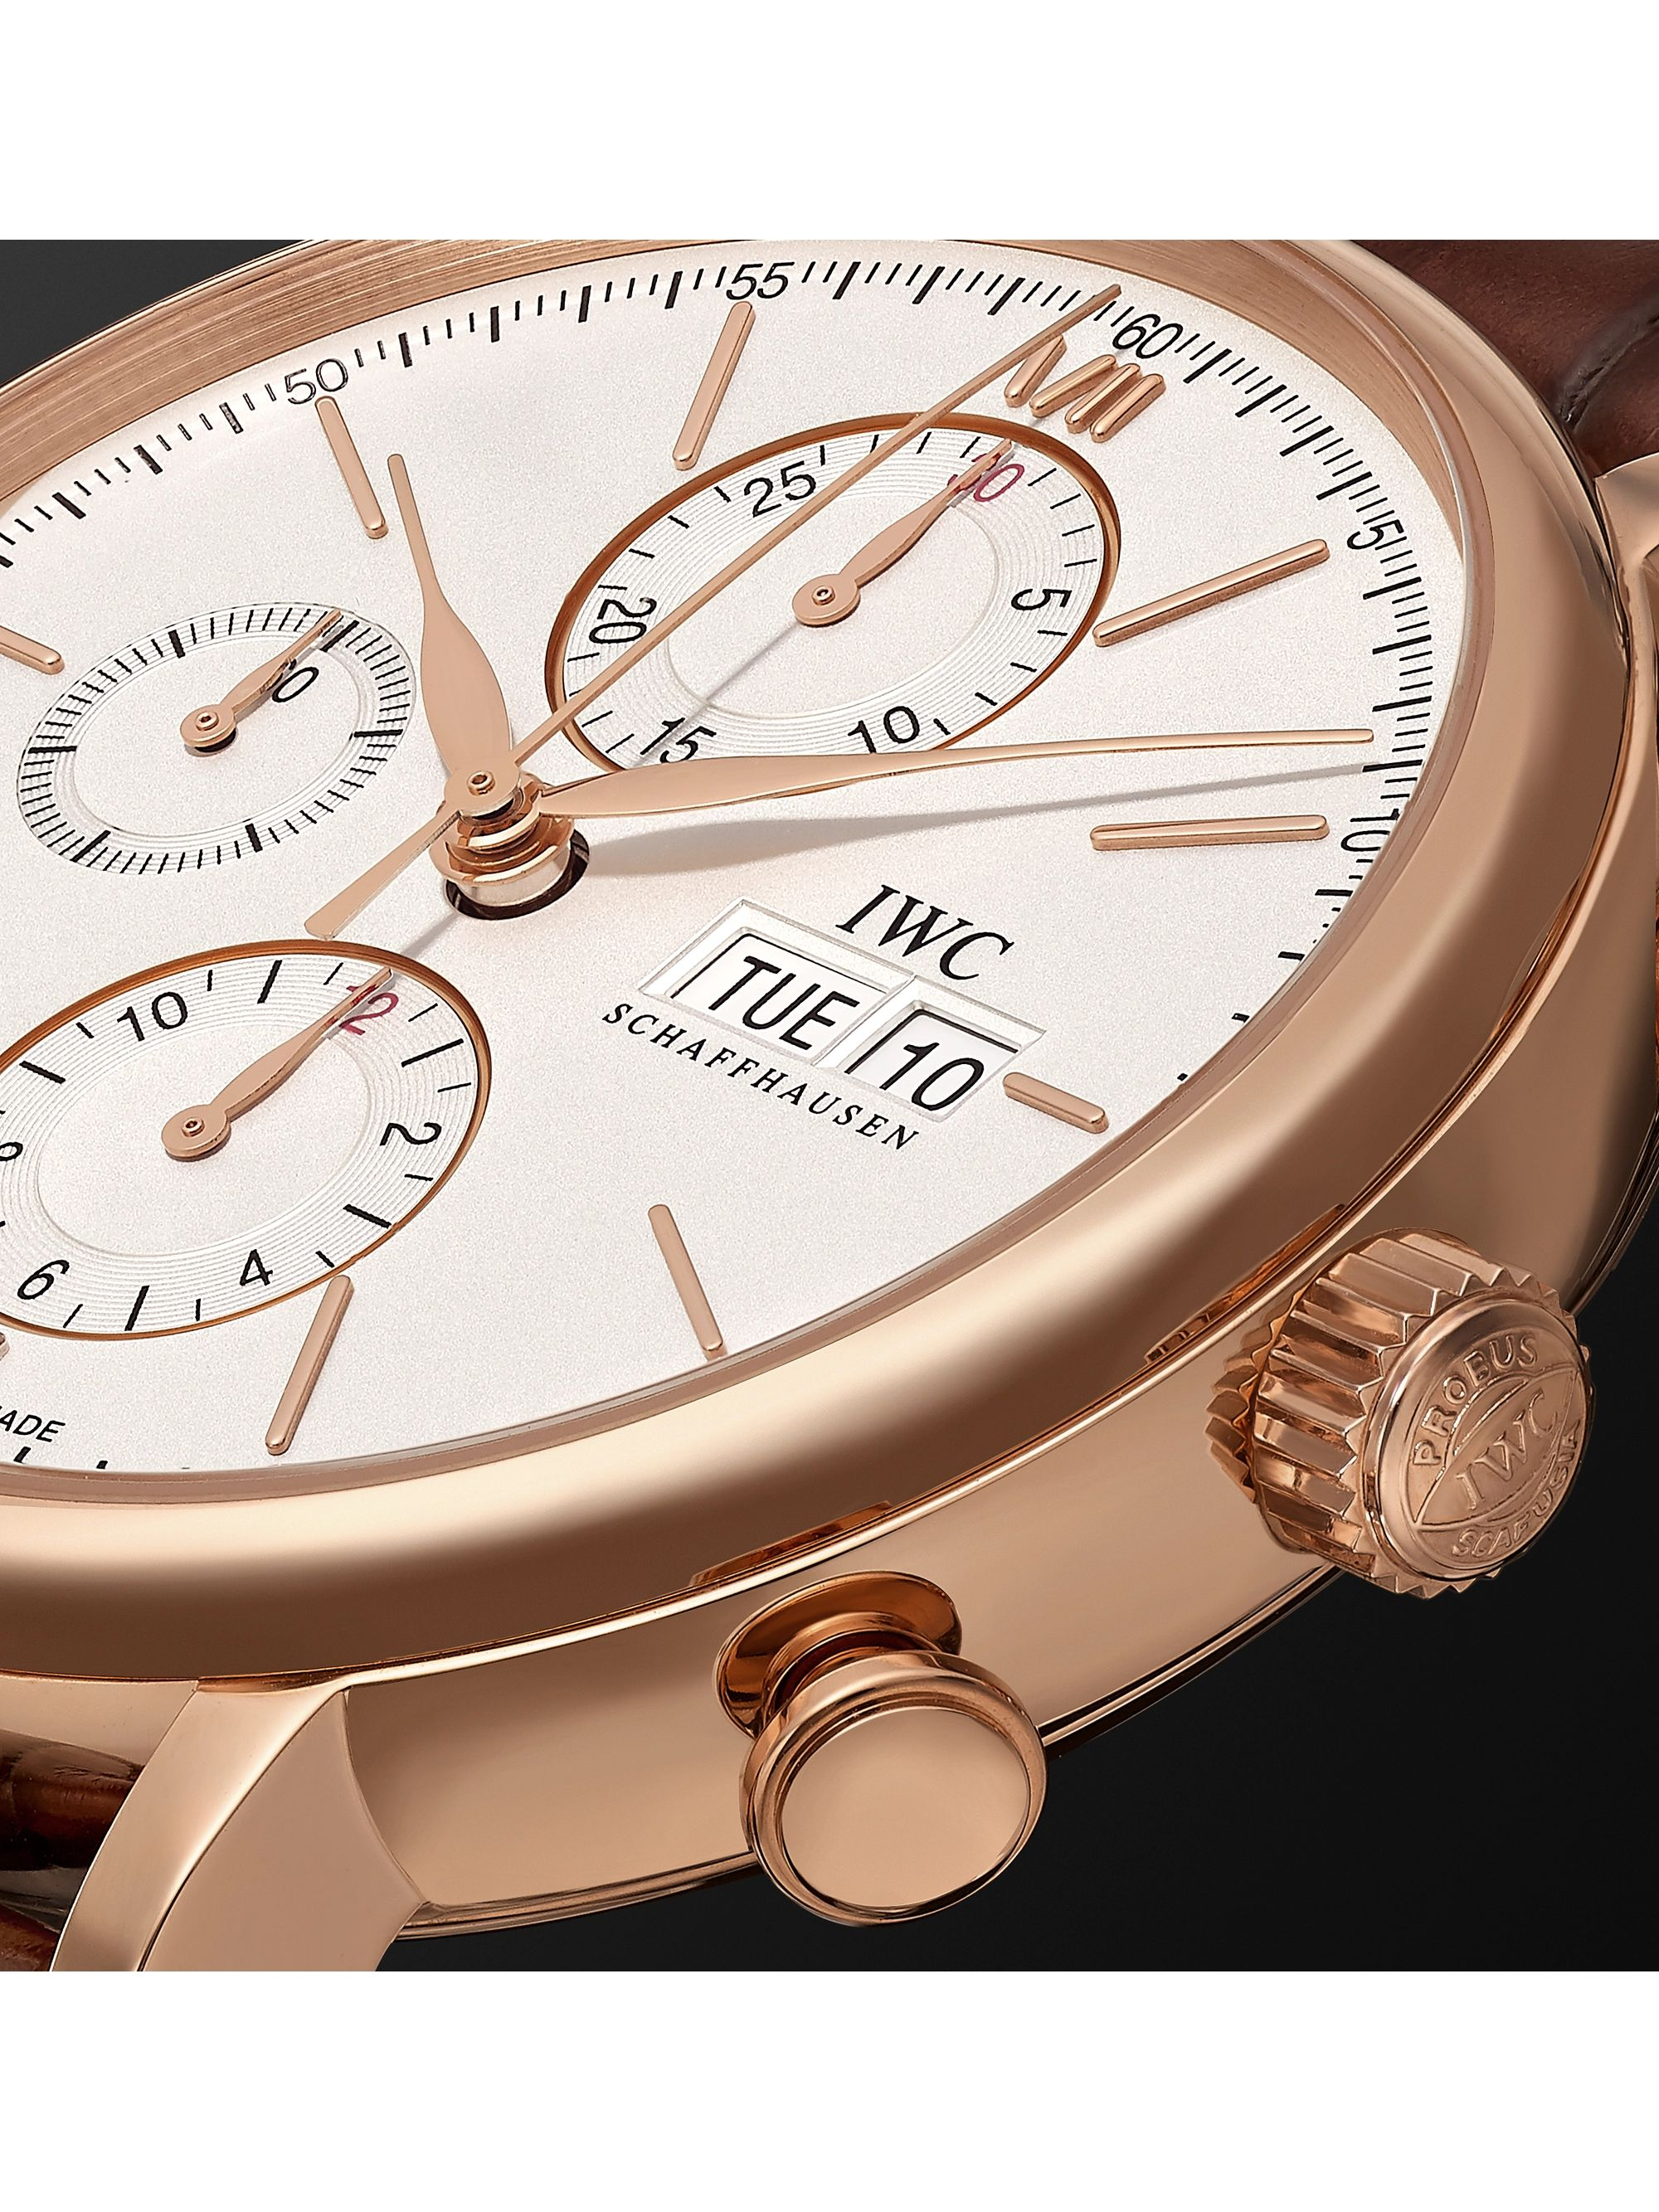 IWC SCHAFFHAUSEN Portofino Chronograph Automatic 42mm 18-Karat Gold and Alligator Watch